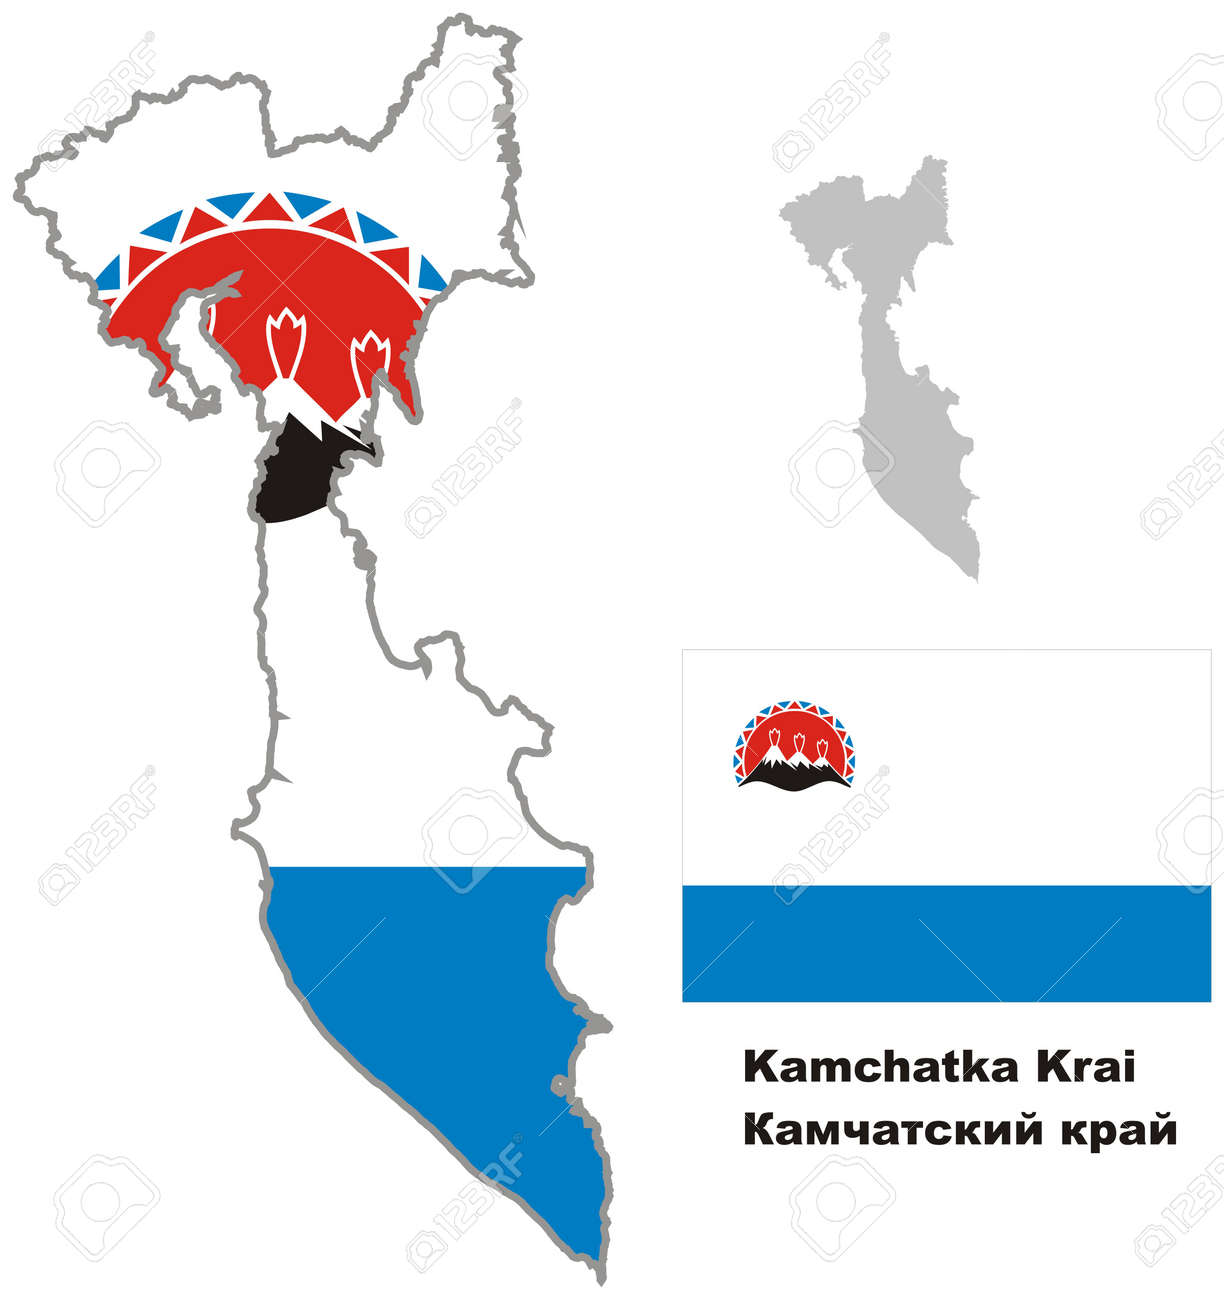 Outline Map Of Kamchatka Krai With Flag Regions Of Russia Vector